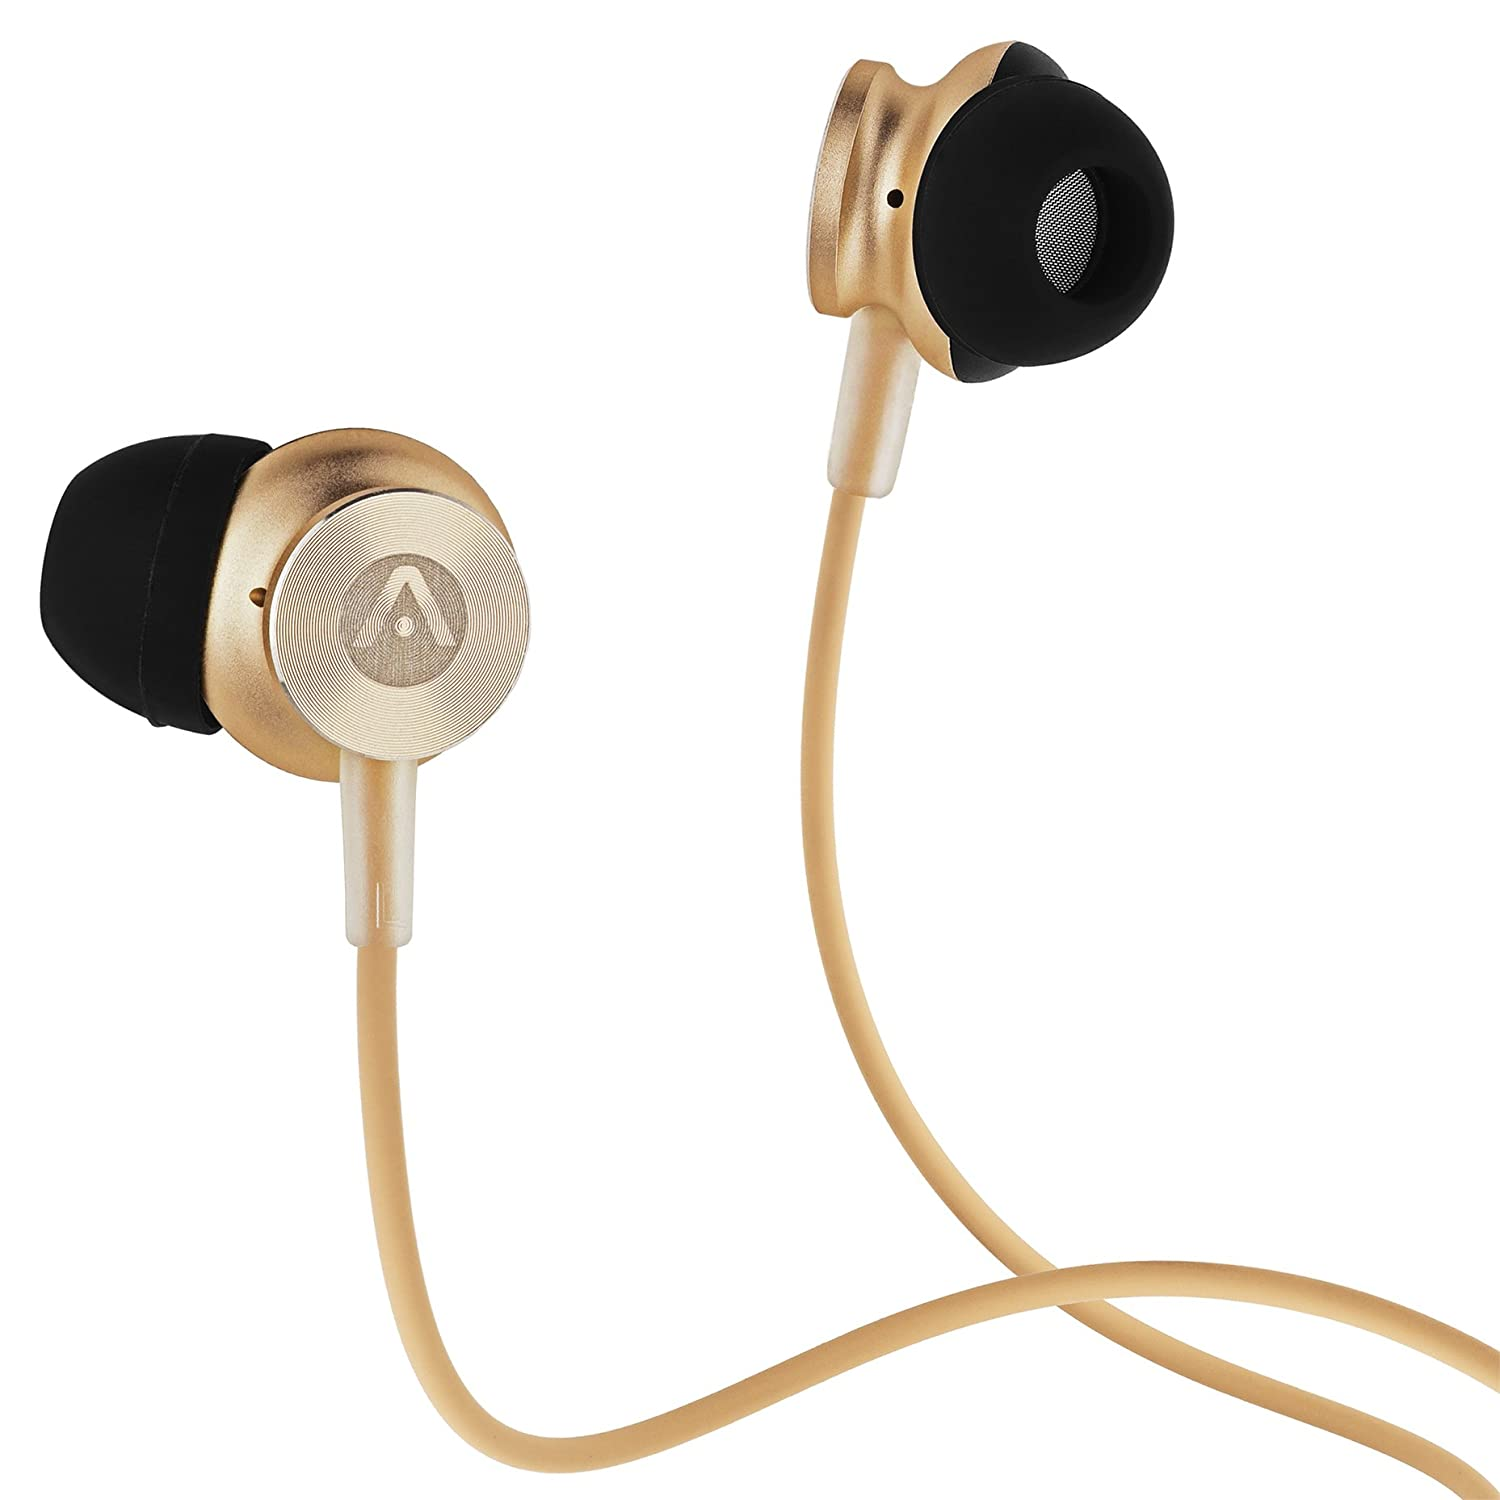 Audiomate A180 Hi-Fidelity Noise Isolating Wired Stereo Stainless Steel Metal in-Ear Earphone Earbuds with Built-in Microphone and Remote | 4